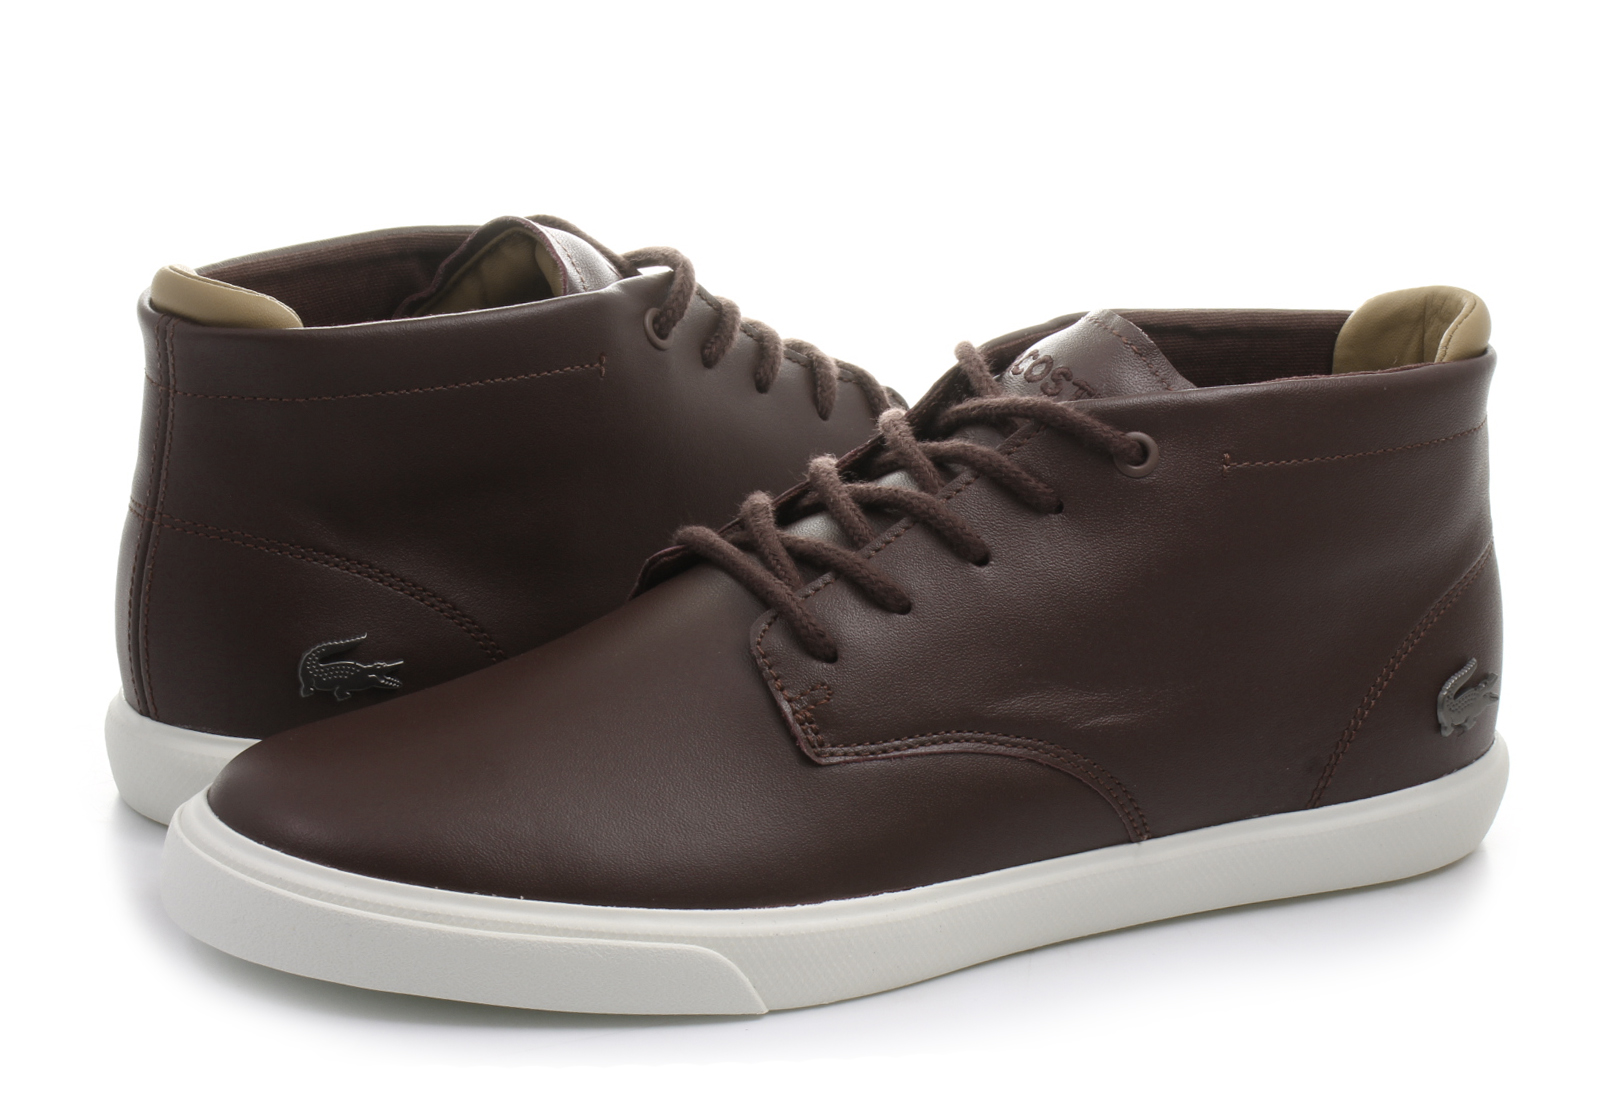 Lacoste Cipő - Espere Chukka - 173CAM0013-176 - Office Shoes ... d336b3d23a